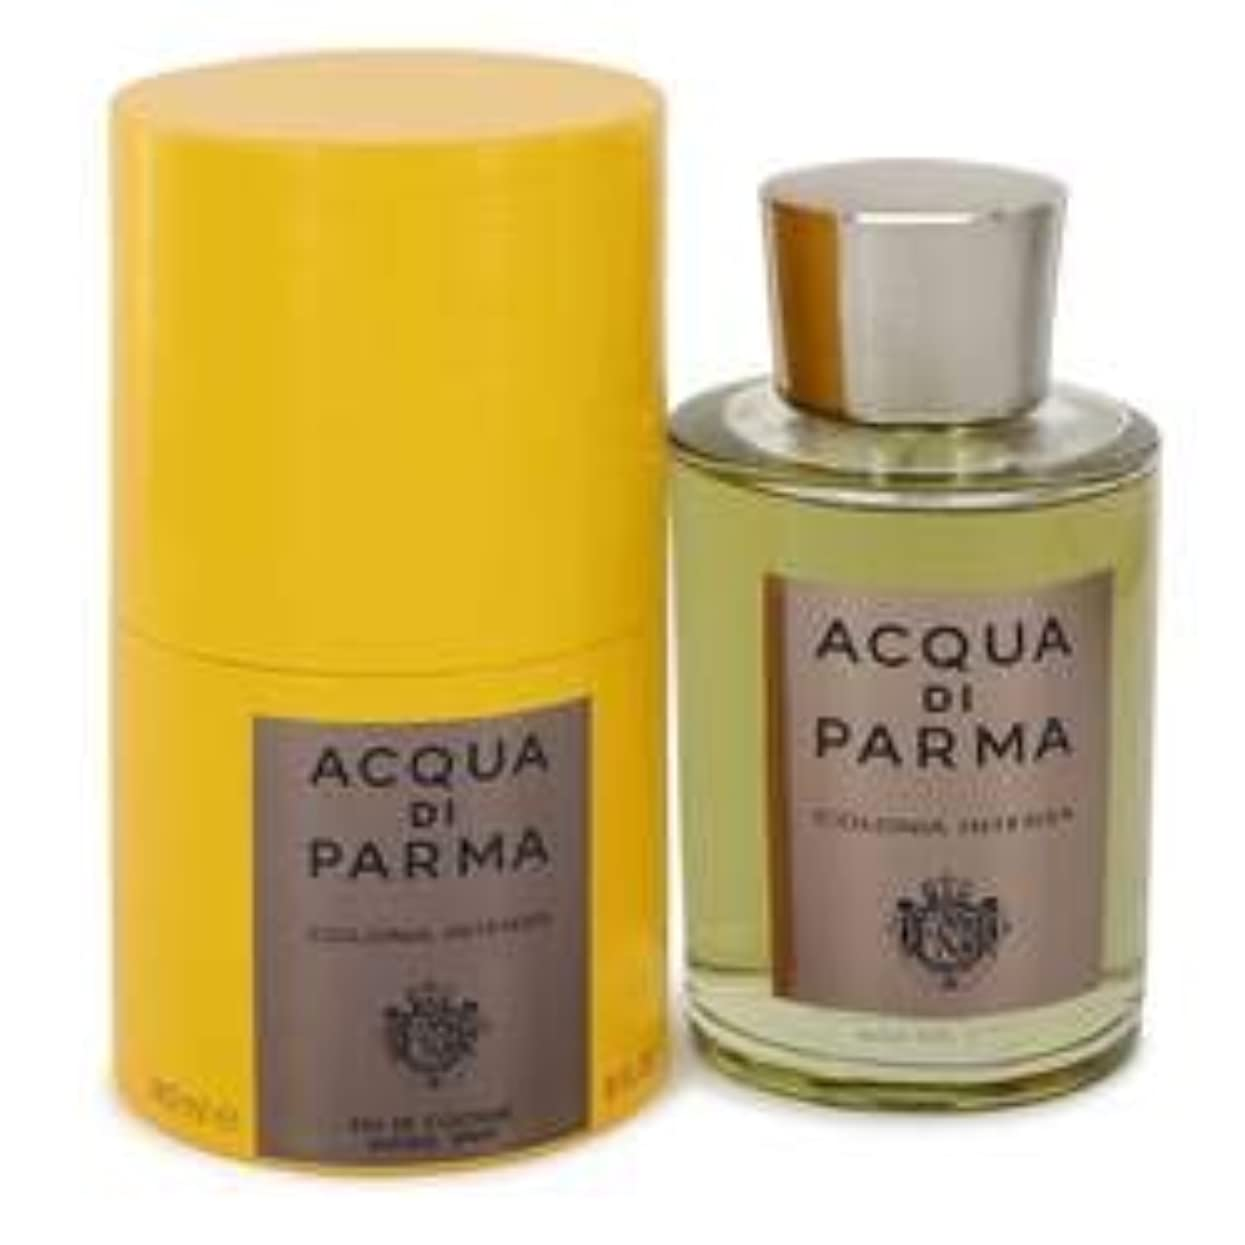 頑丈忌み嫌う電話をかけるAcqua Di Parma Colonia Intensa Eau De Cologne Spray By Acqua Di Parma